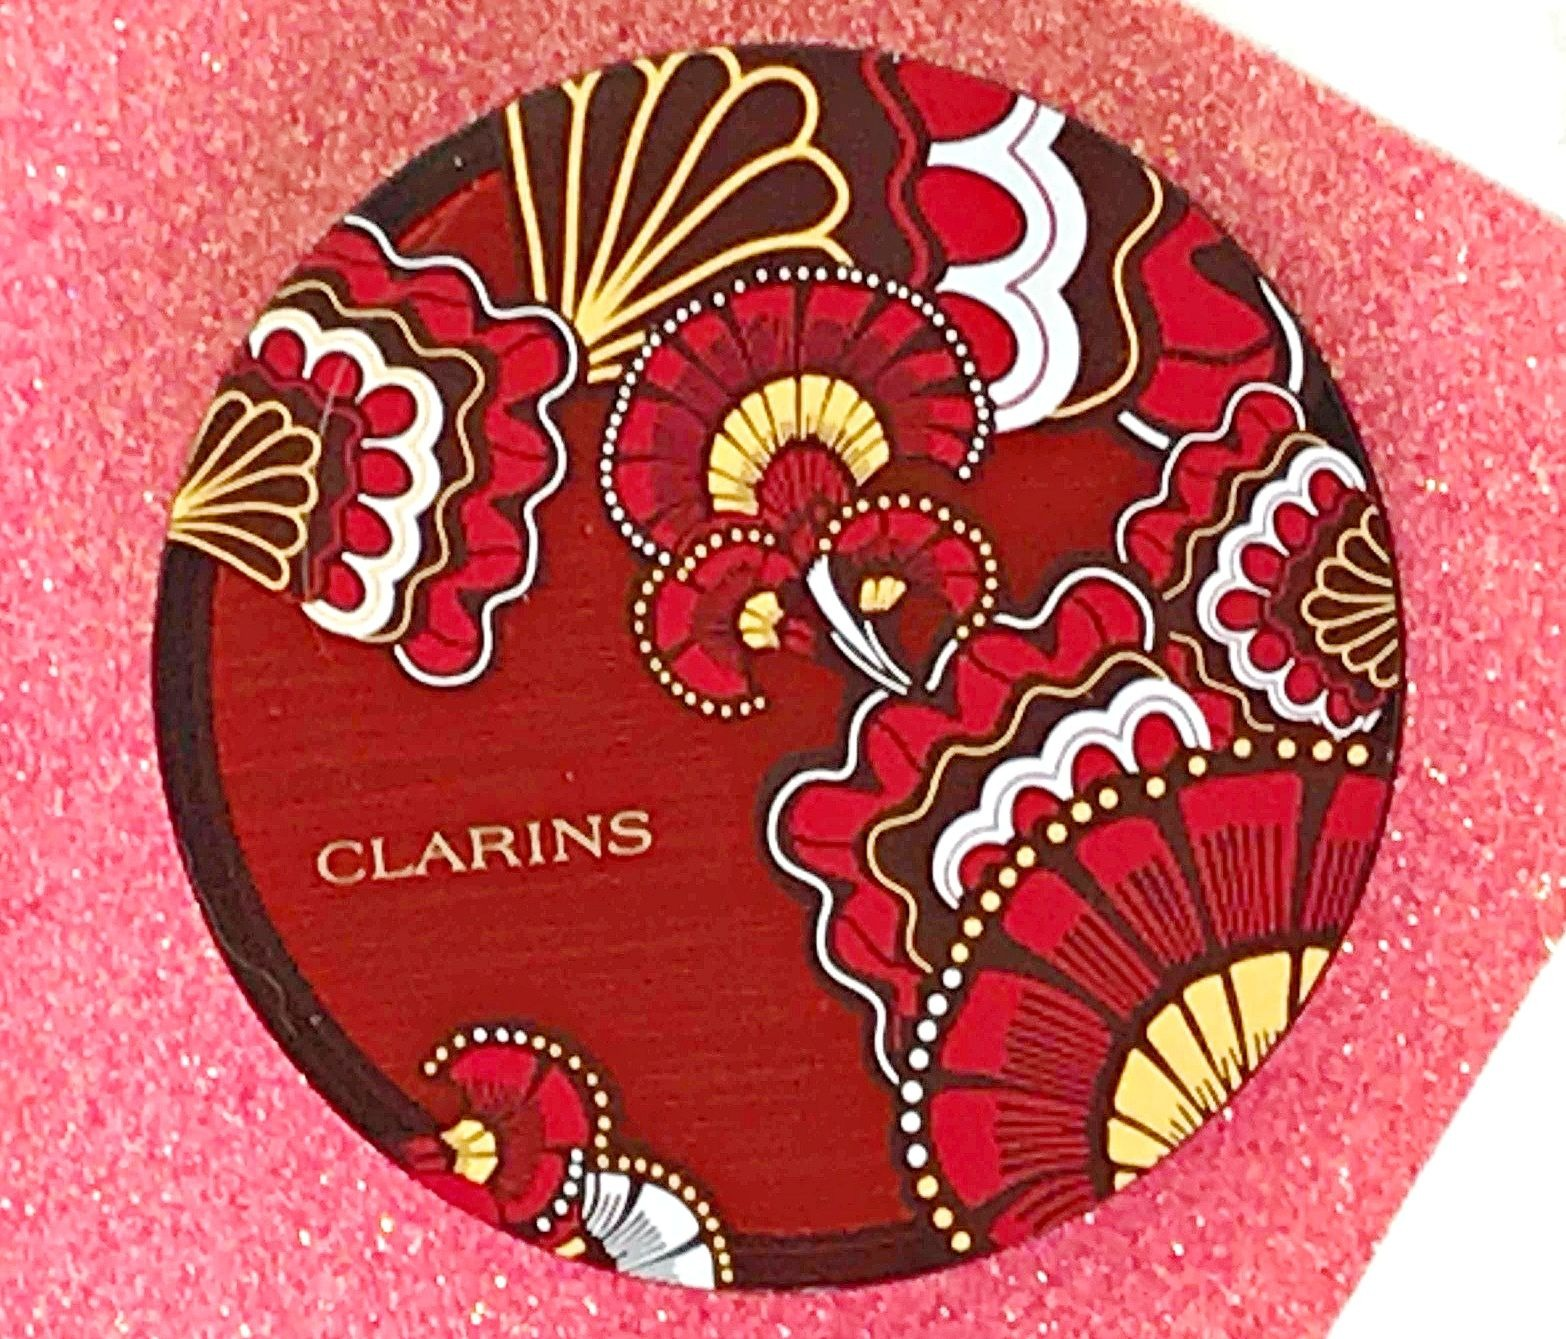 Clarins Summer Collection 2019